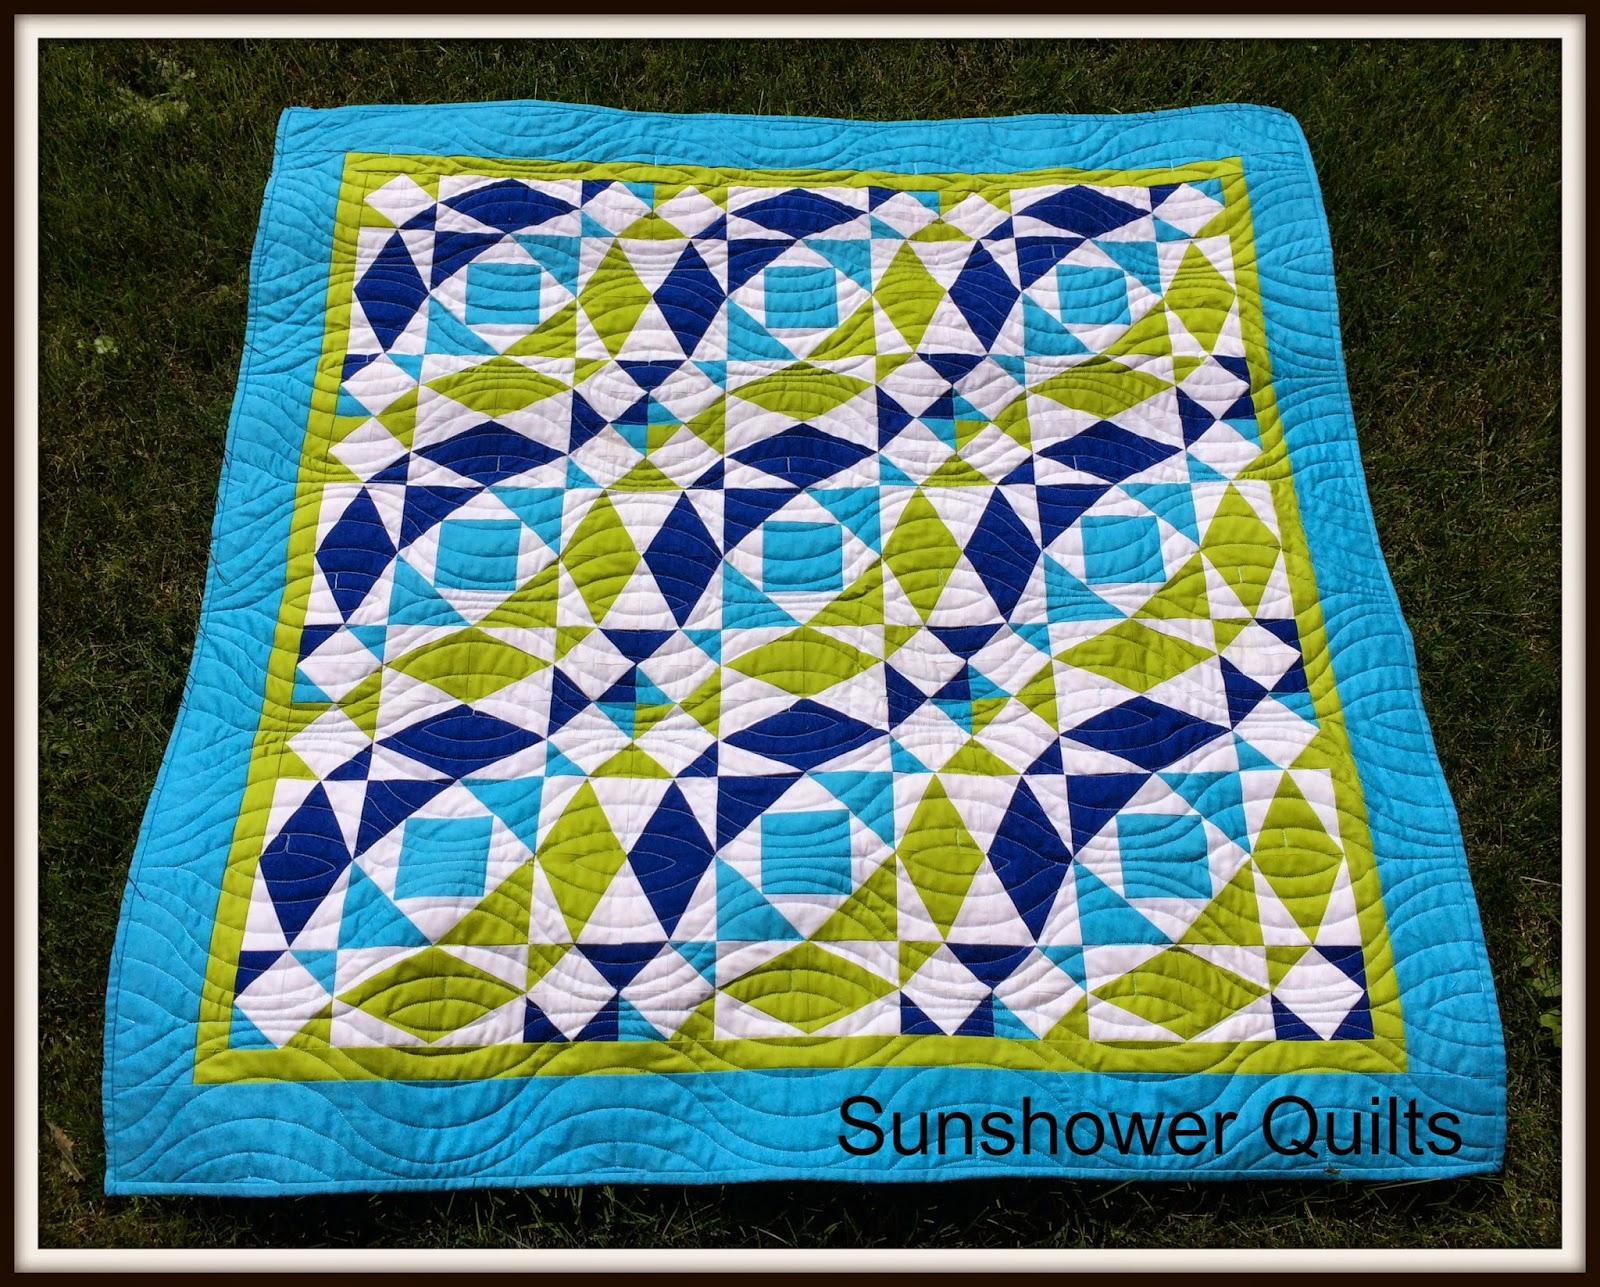 storm at sea quilt template - sunshower quilts storm at sea